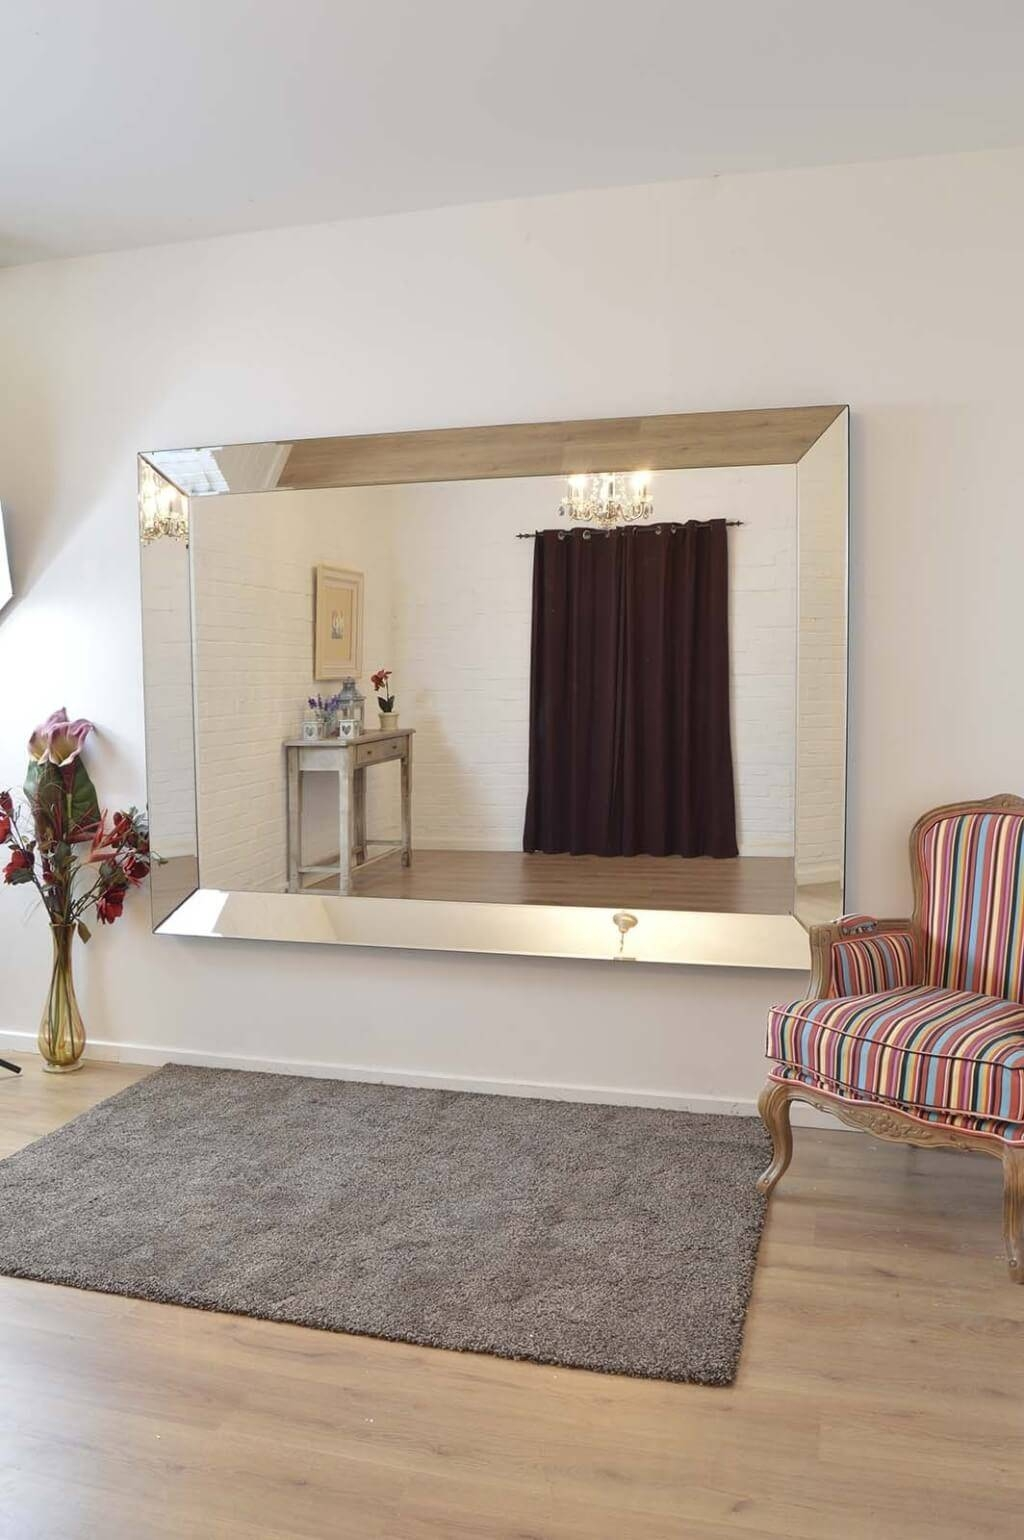 Ideas : Wondrous Living Decorating Mirror For Living Room Modern With Regard To Large Frameless Wall Mirrors (View 8 of 25)